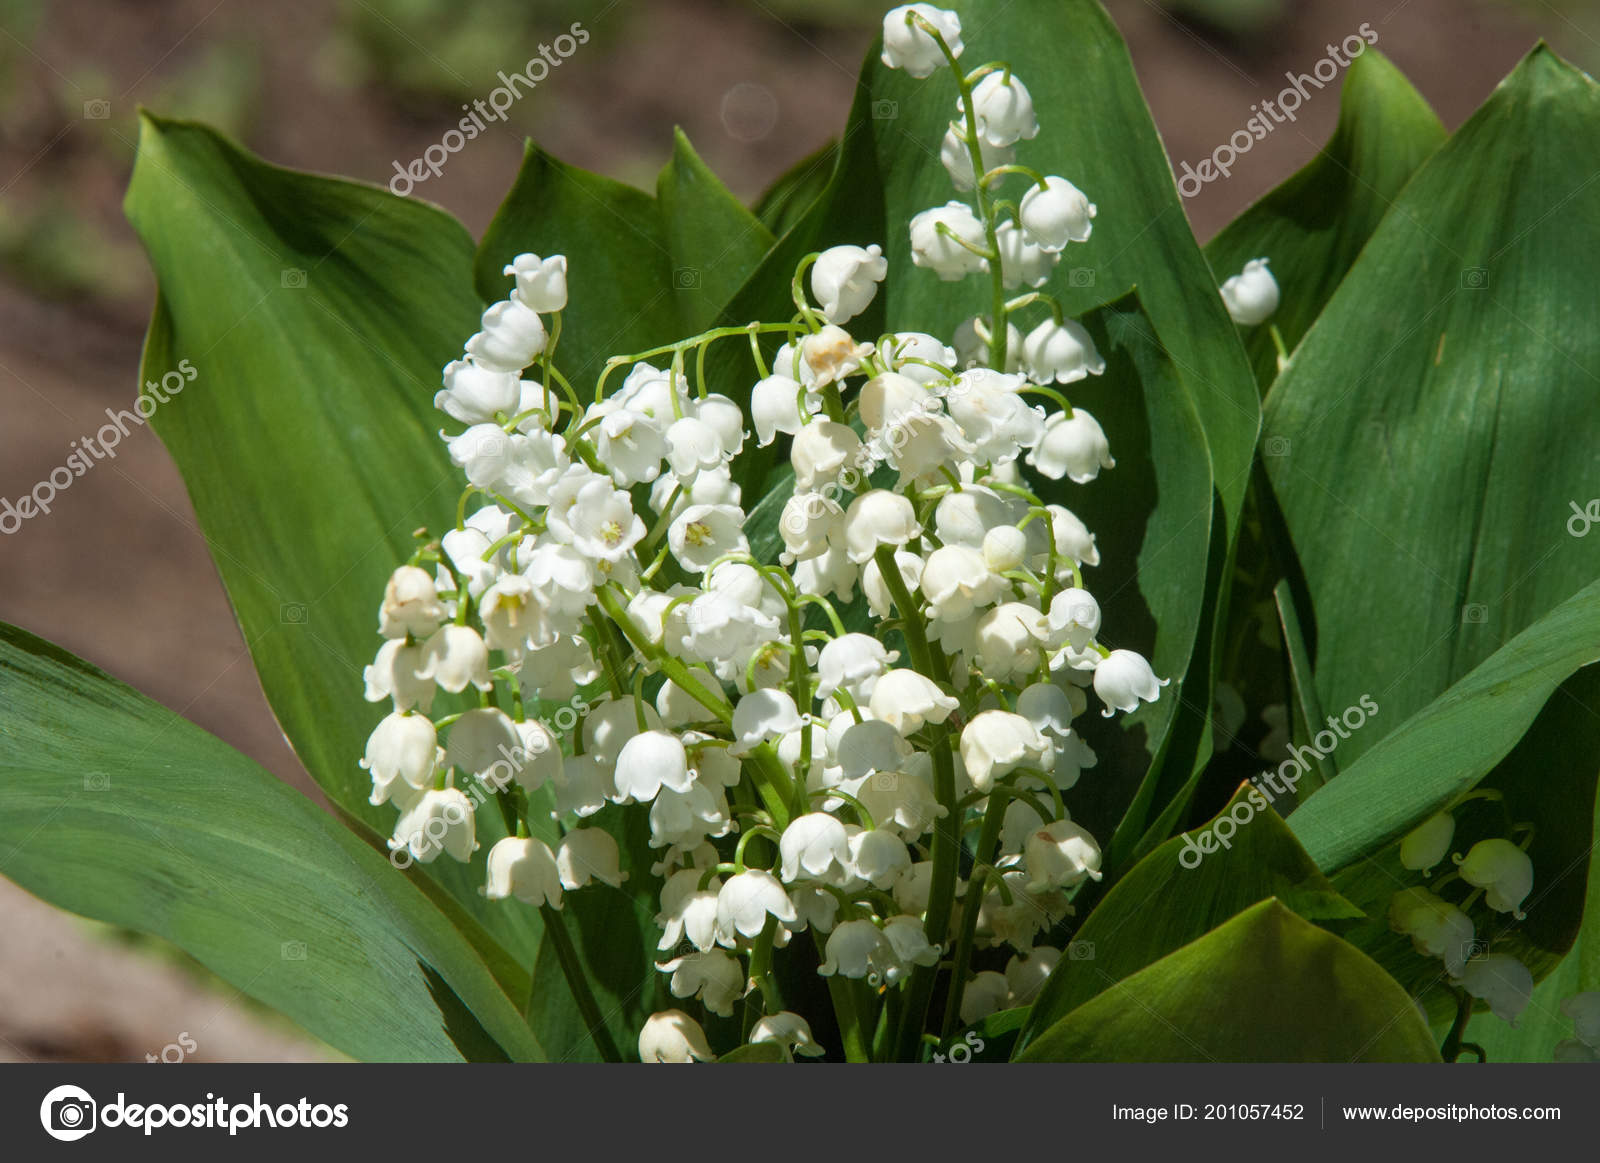 Pictures: lily of the valley flowers | Lily Valley Flowers Natural ...